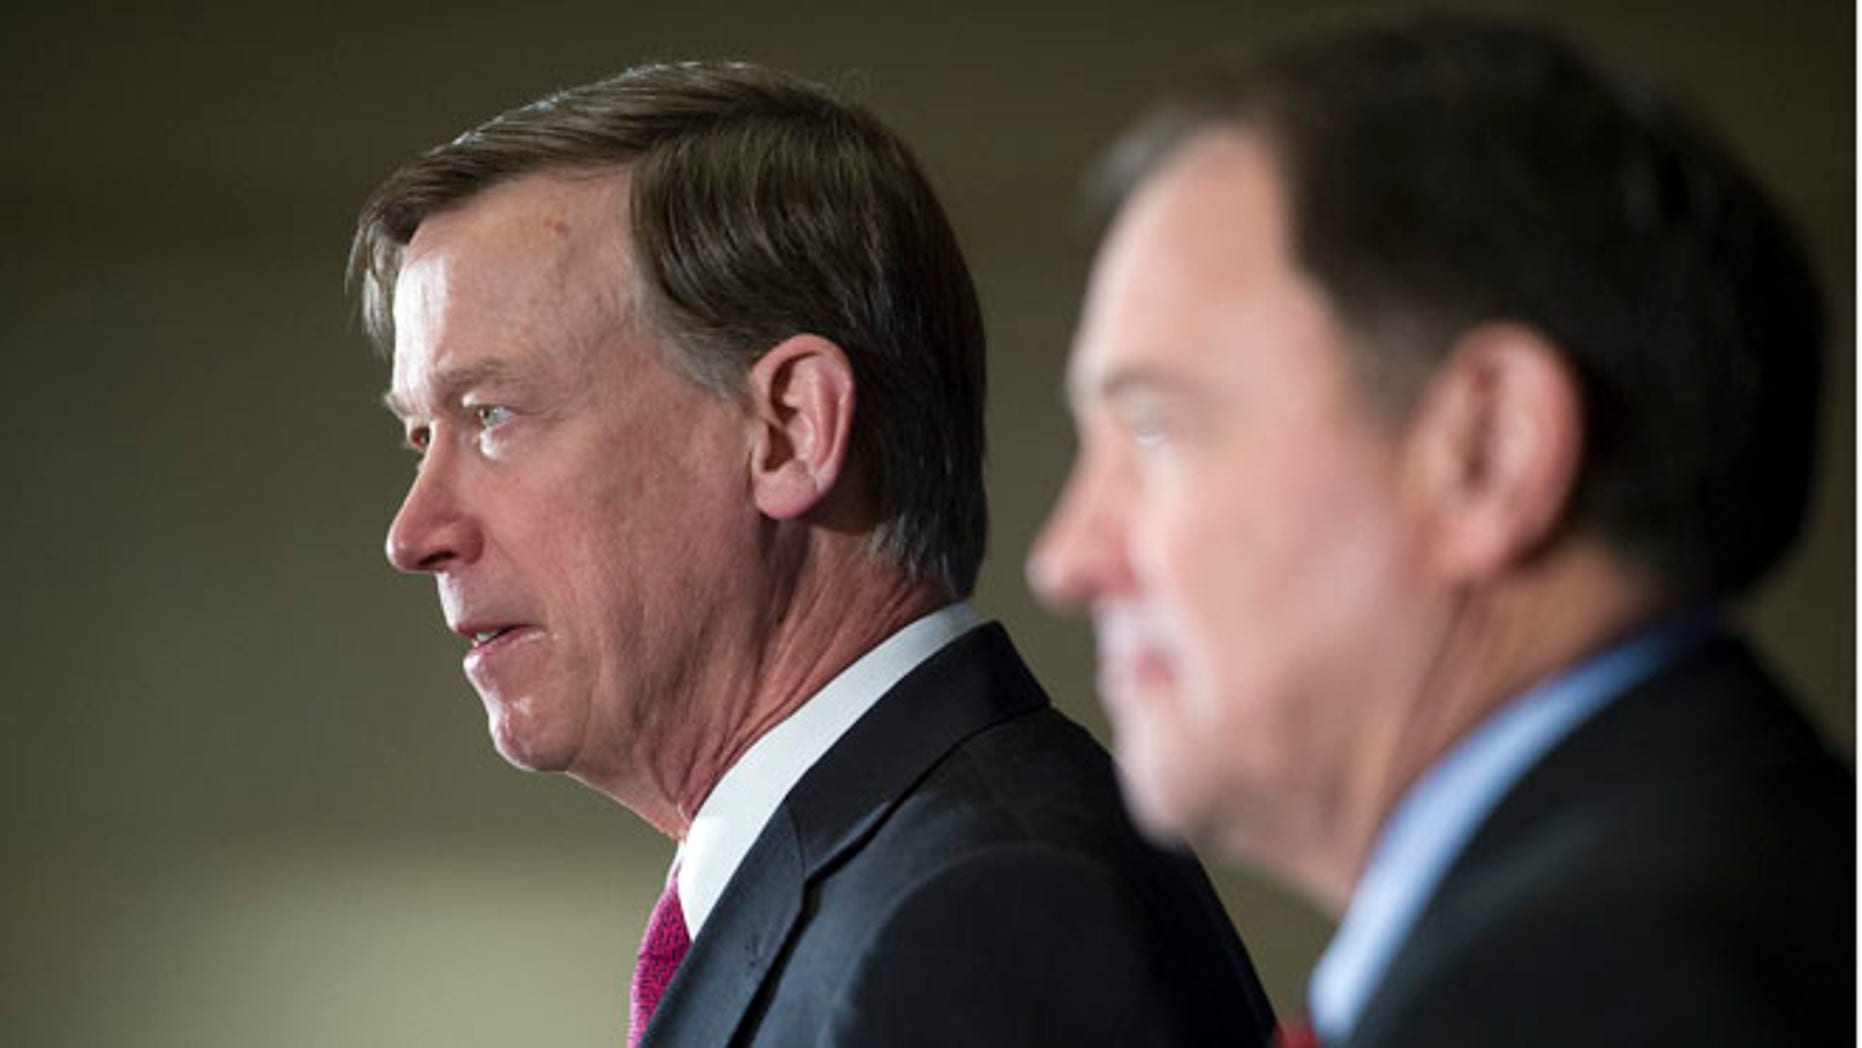 Feb. 21, 2015: National Governors Association Chairman, Colorado Gov. John Hickenlooper, left, and Vice Chair, Utah Gov. Gary Herbert, at the group's Winter Meeting in Washington, D.C.